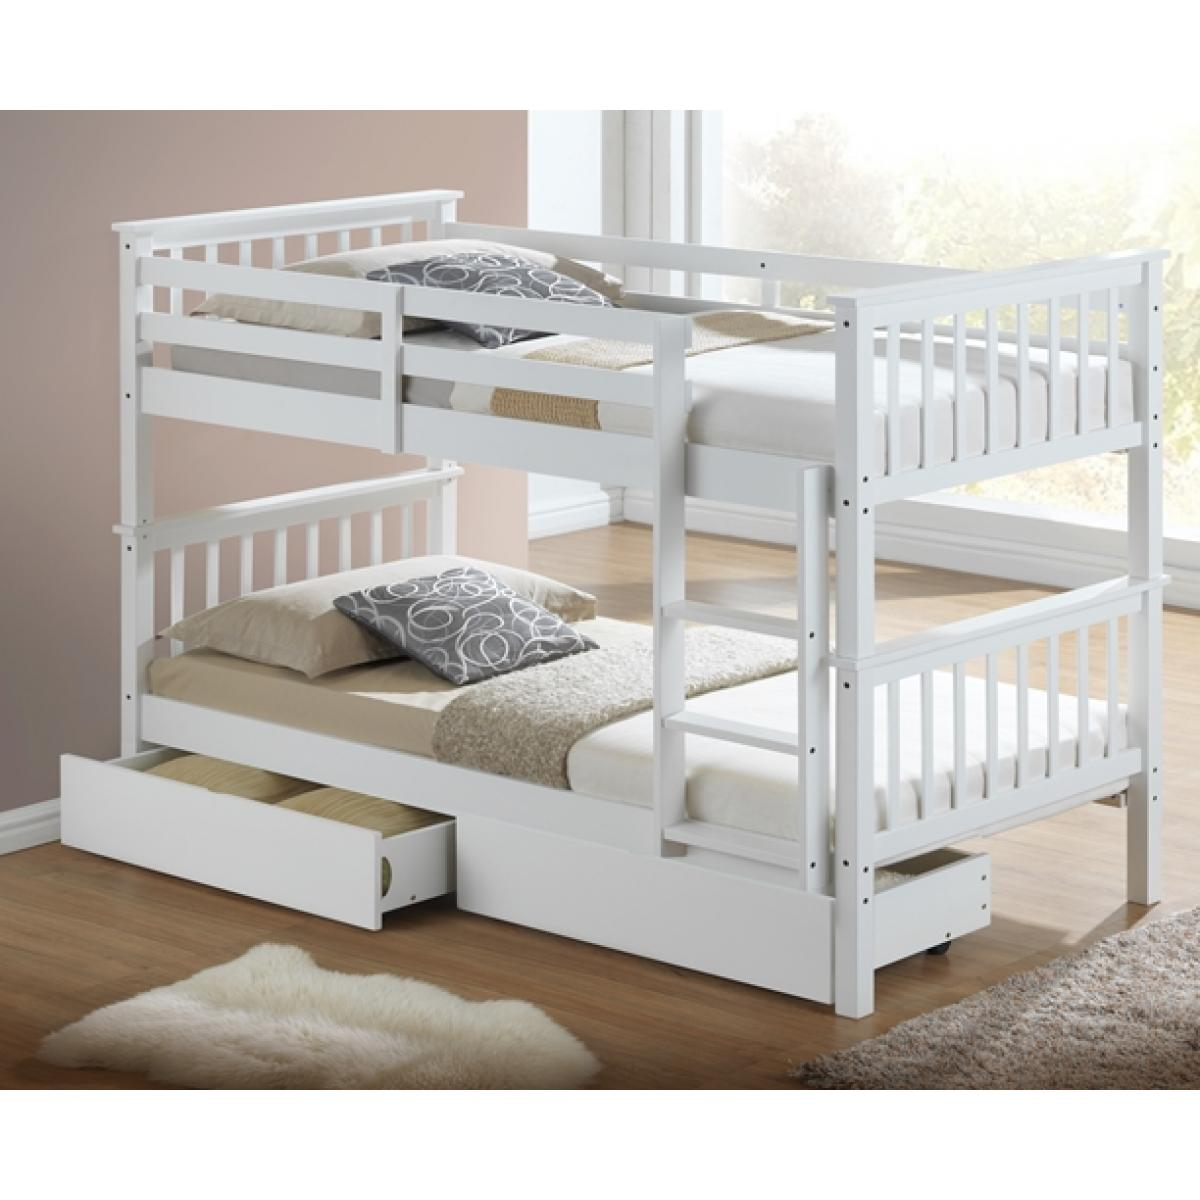 Picture of: Calder White Finished Hardwood Bunk Bed With Storage Drawers